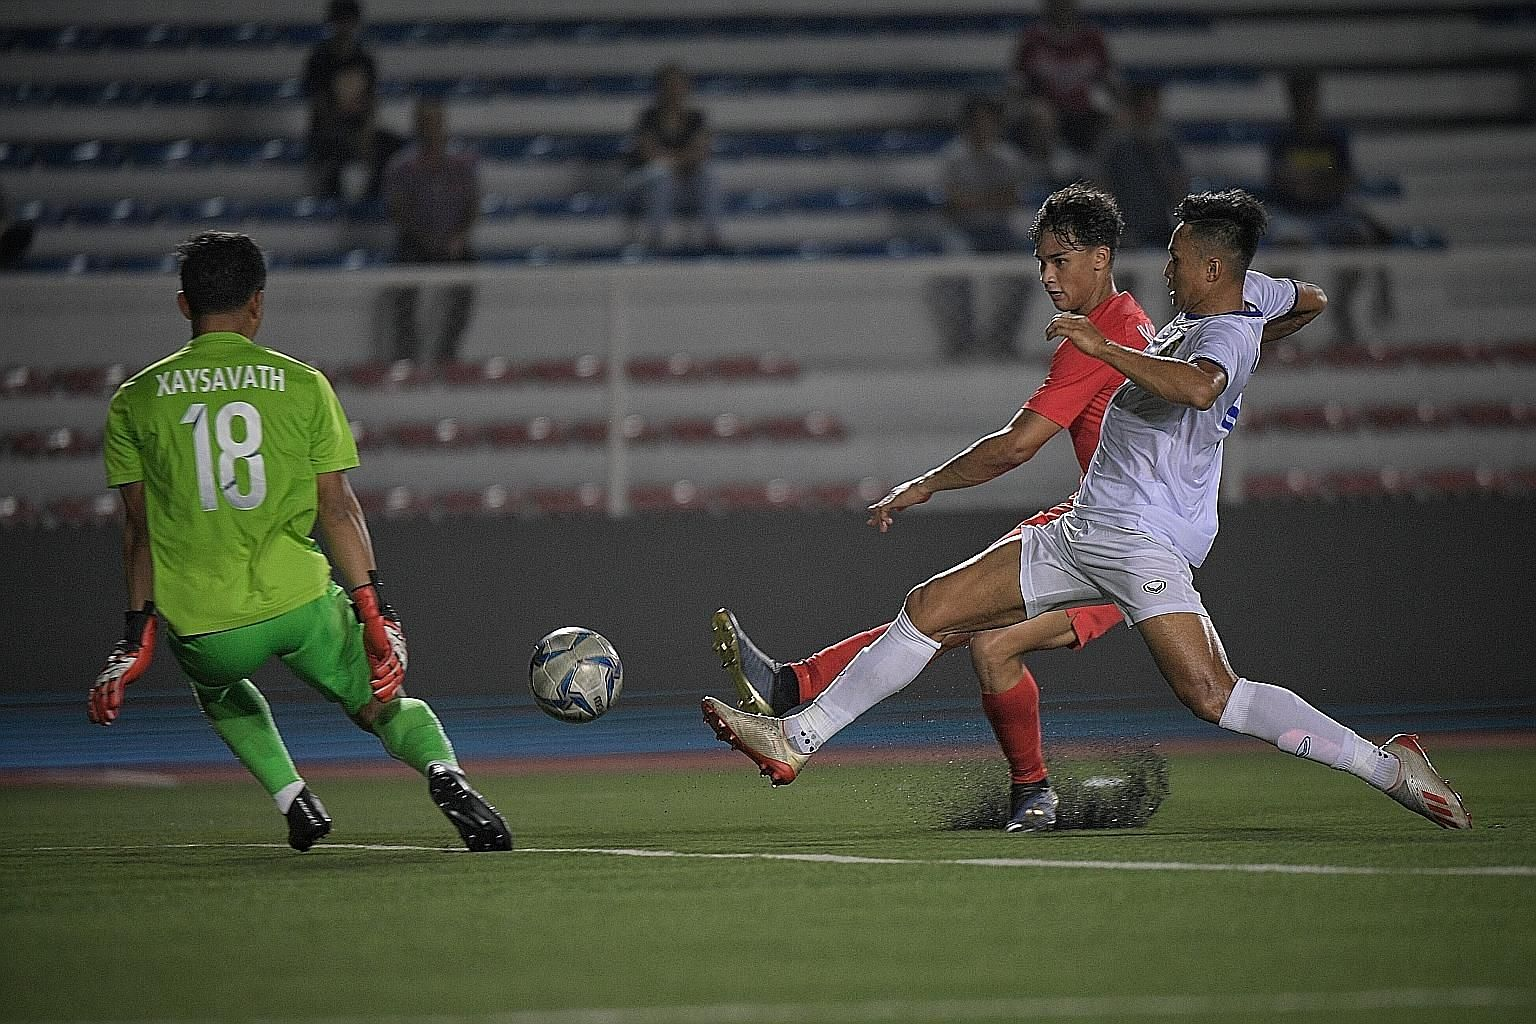 Striker Ikhsan Fandi, son of Singapore Under-22 coach Fandi Ahmad, trying to score against Laos in a 0-0 draw. After the disappointing start, they suffered three straight defeats - against Indonesia, Thailand and Vietnam - before beating Brunei 7-0 y